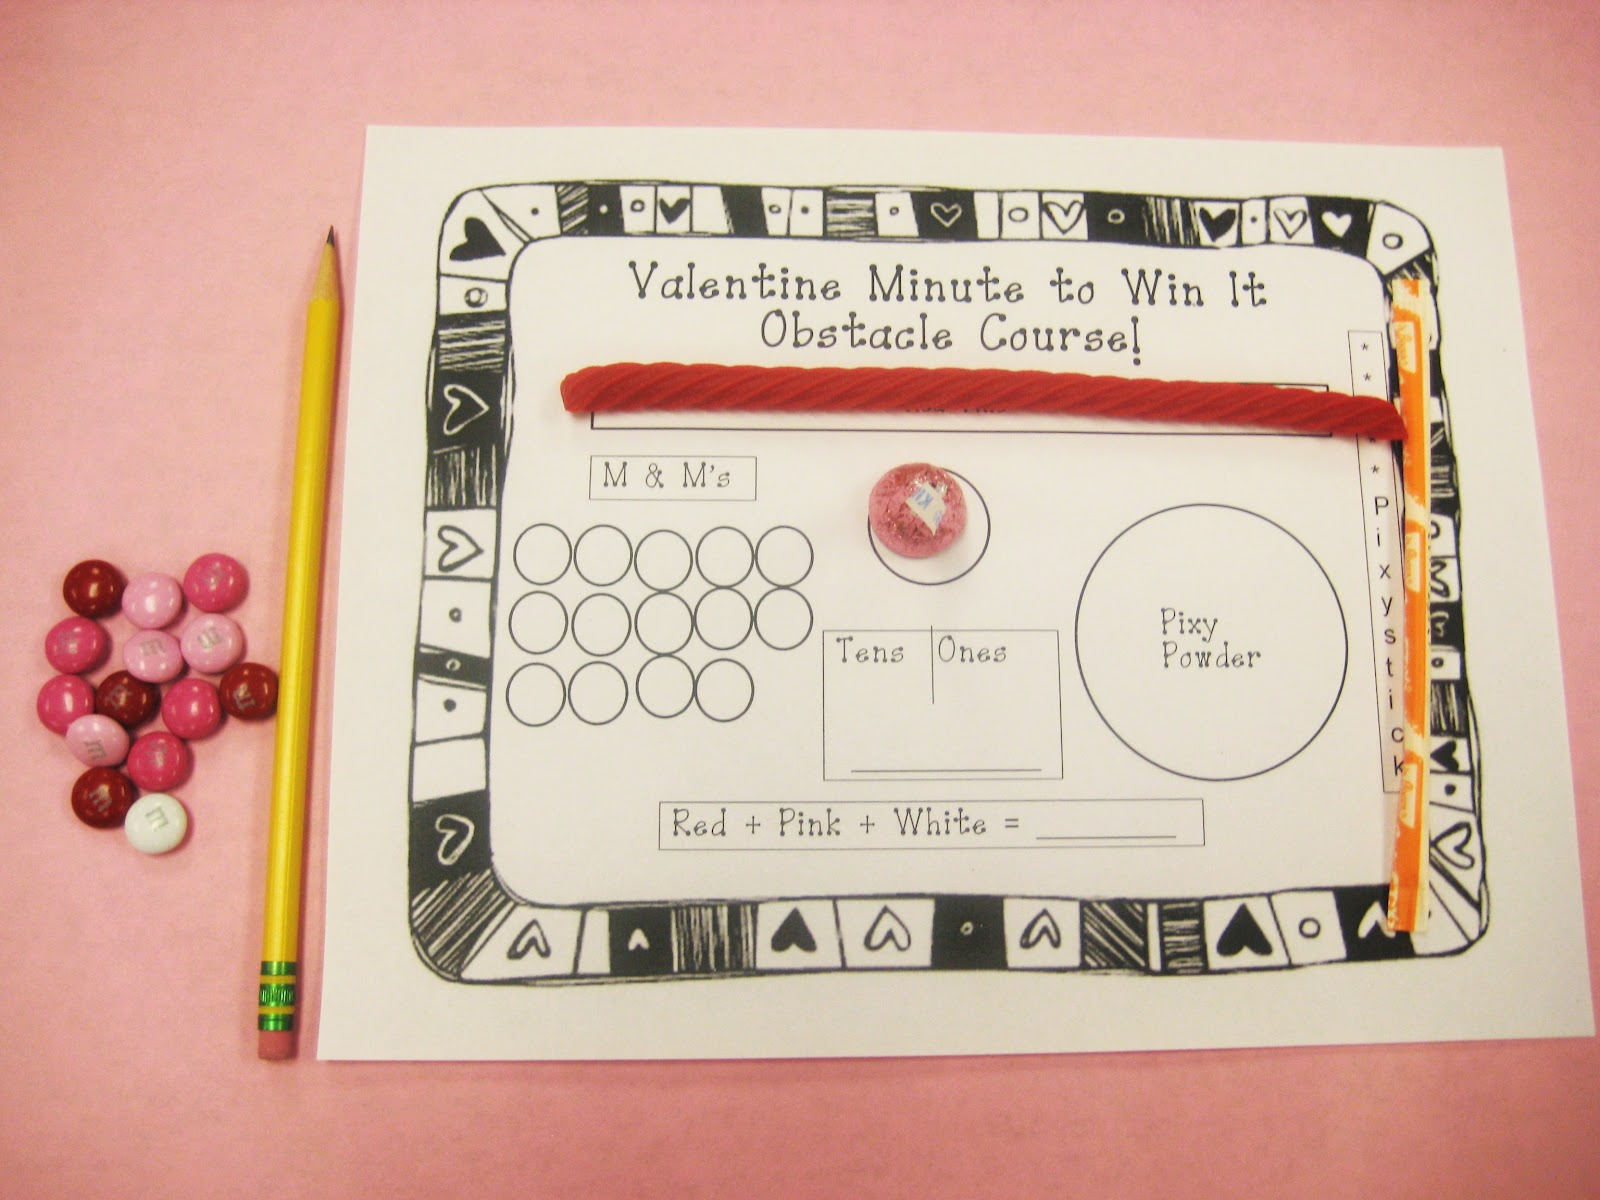 click for minute to win it valentine printable - Valentine Minute To Win It Games